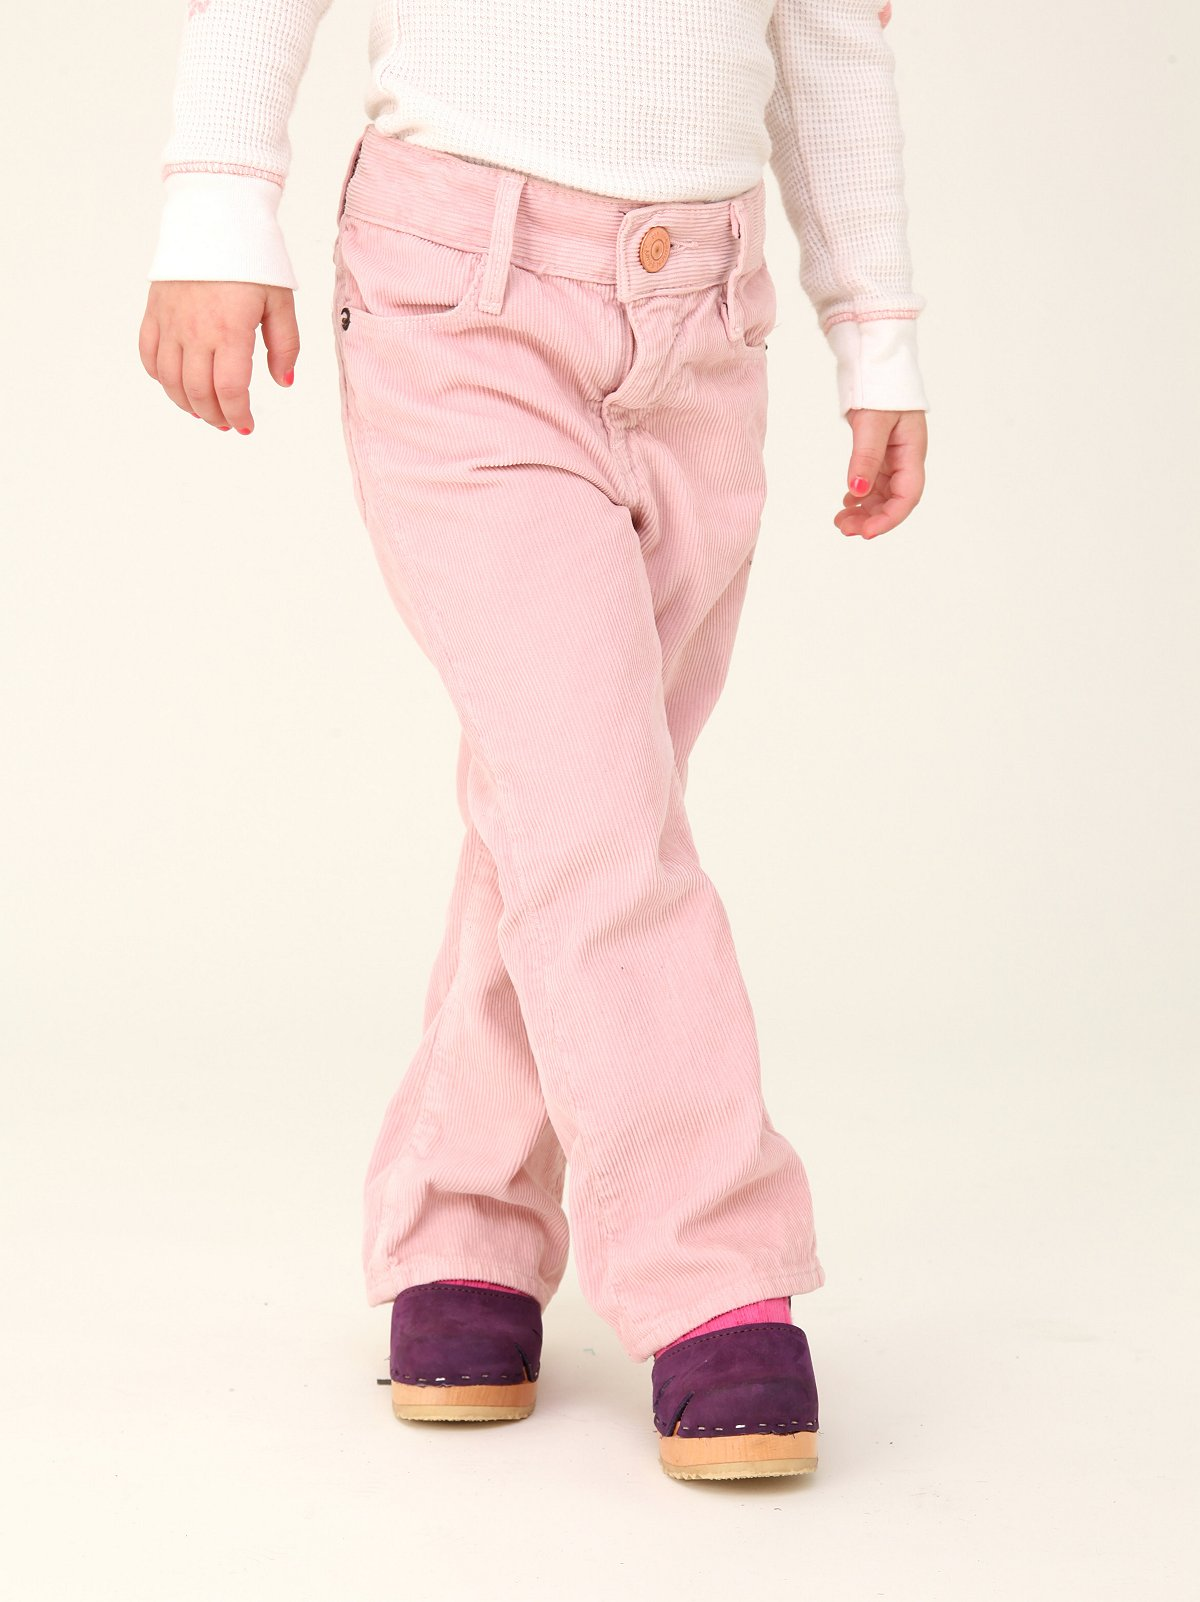 Wee People Pink Corduroy Bottoms